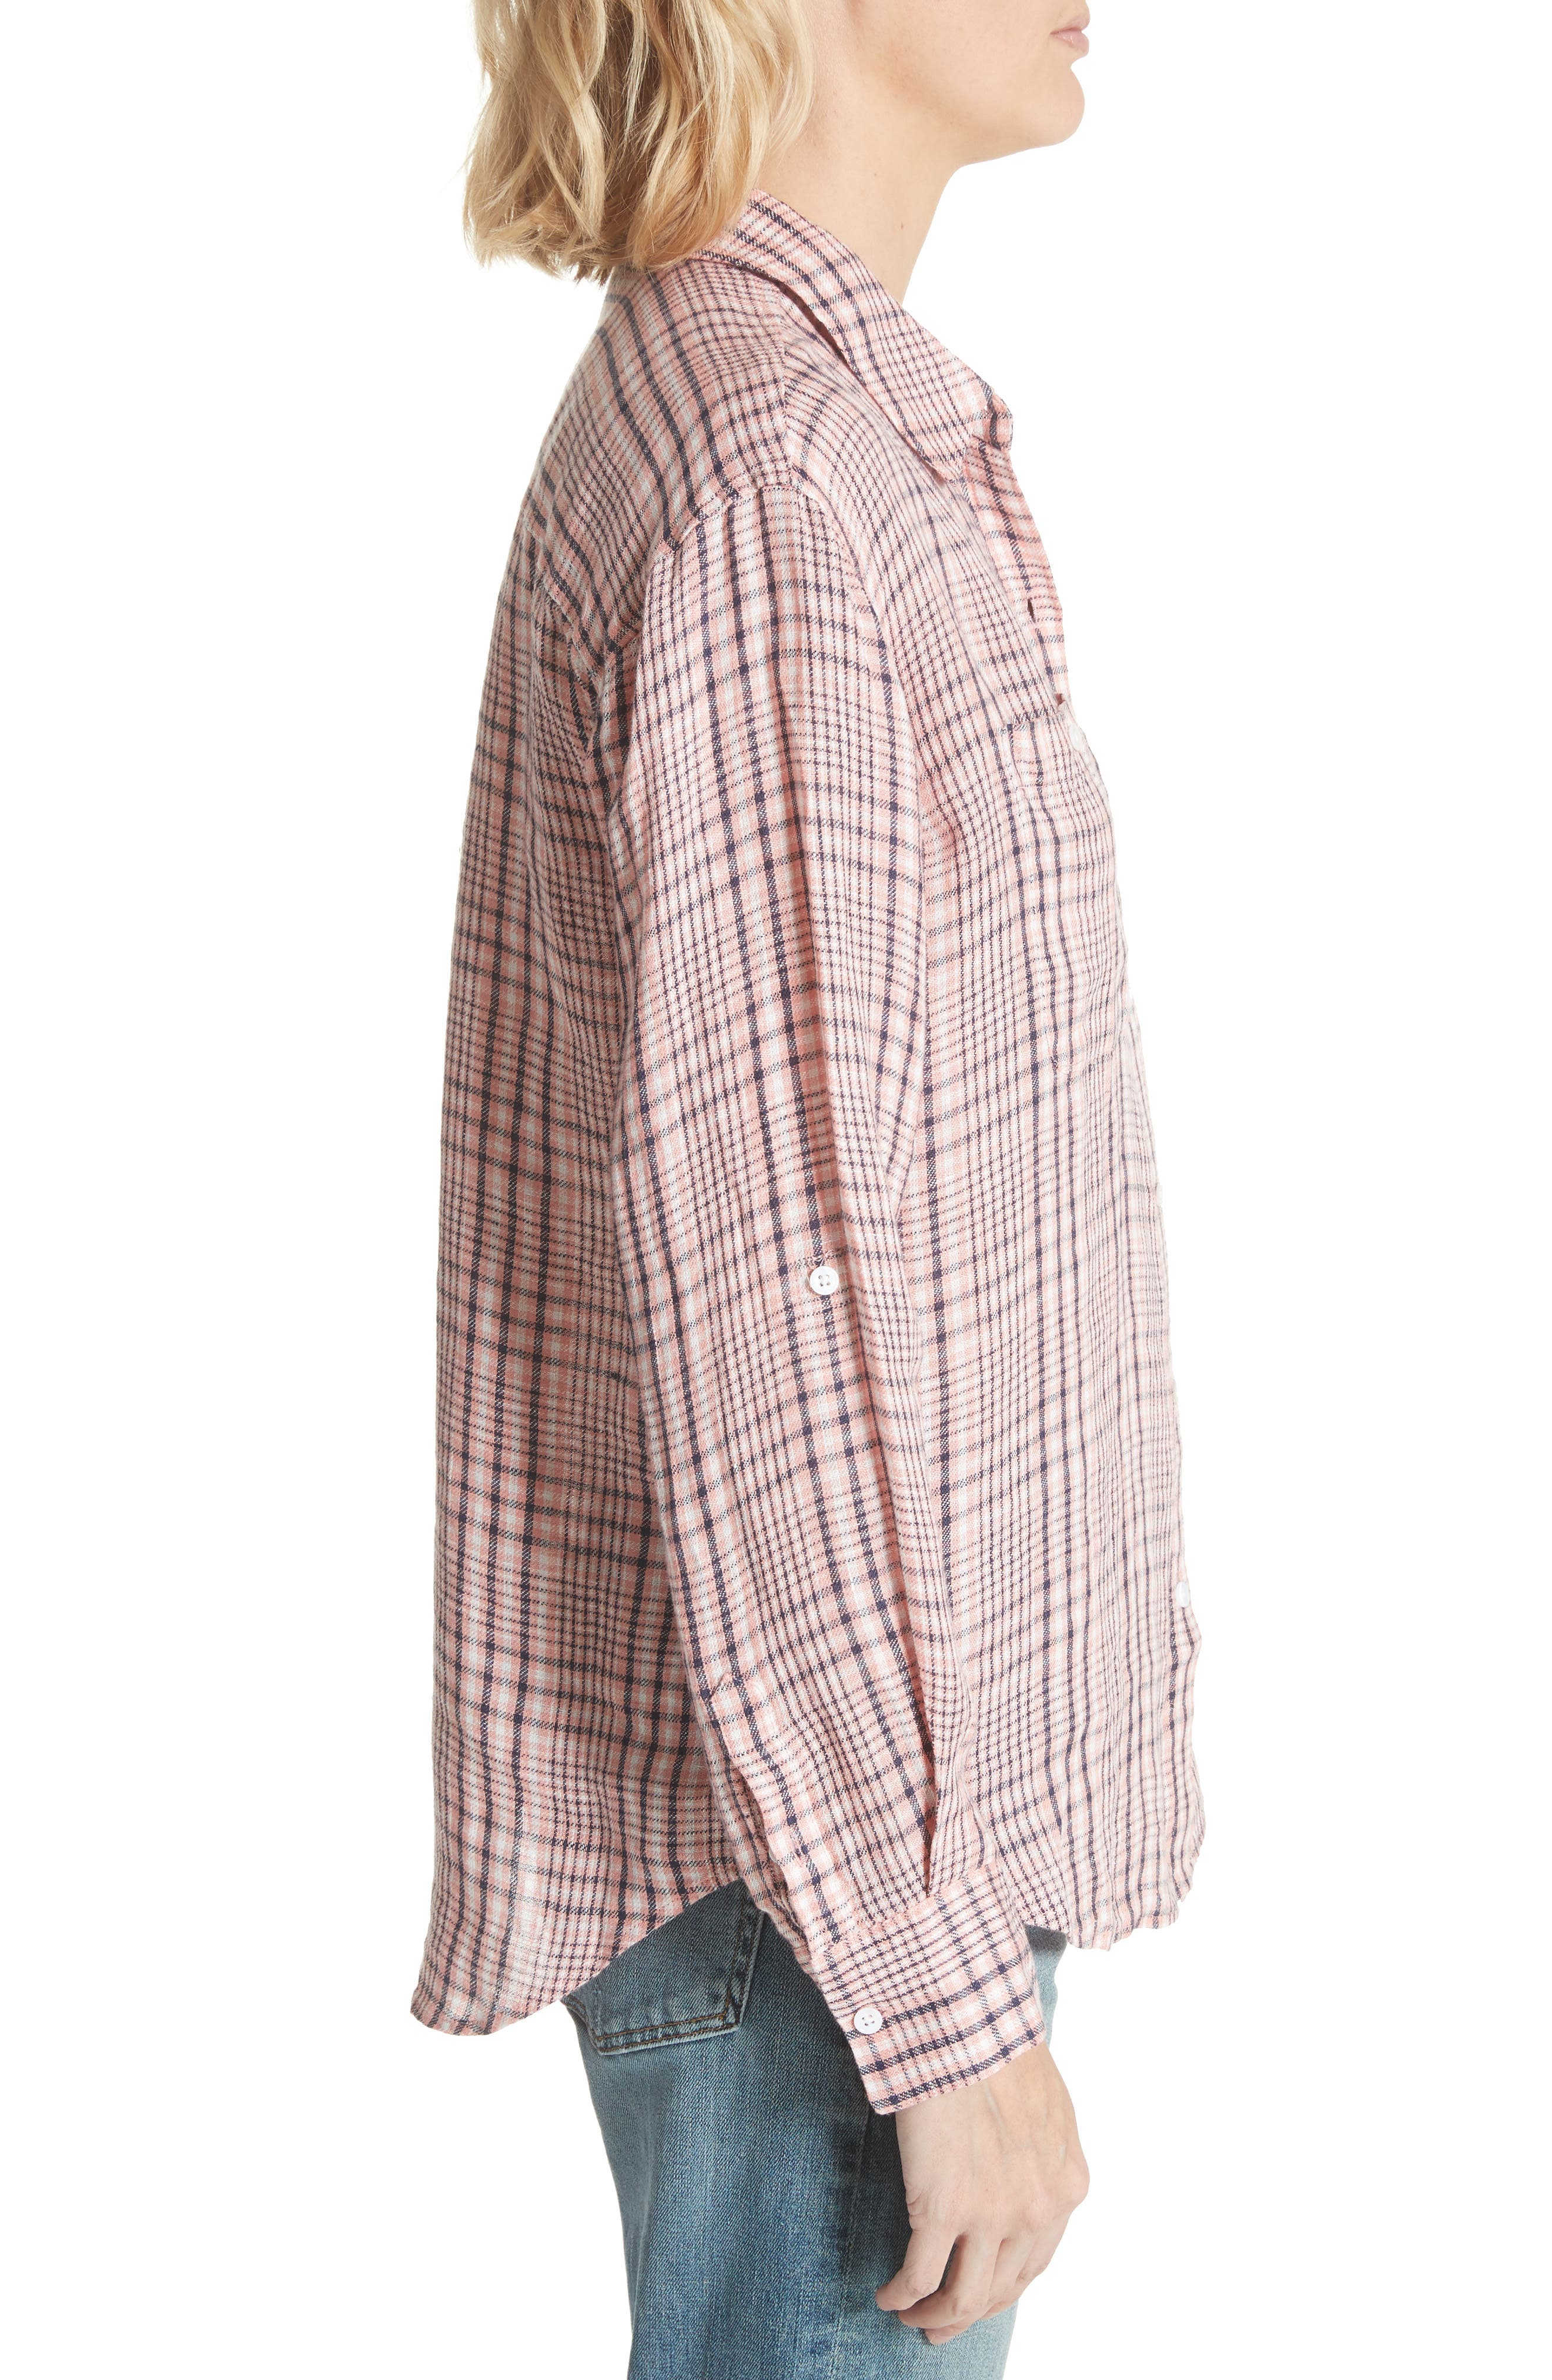 Lidelle Plaid Linen Shirt,                             Alternate thumbnail 3, color,                             658